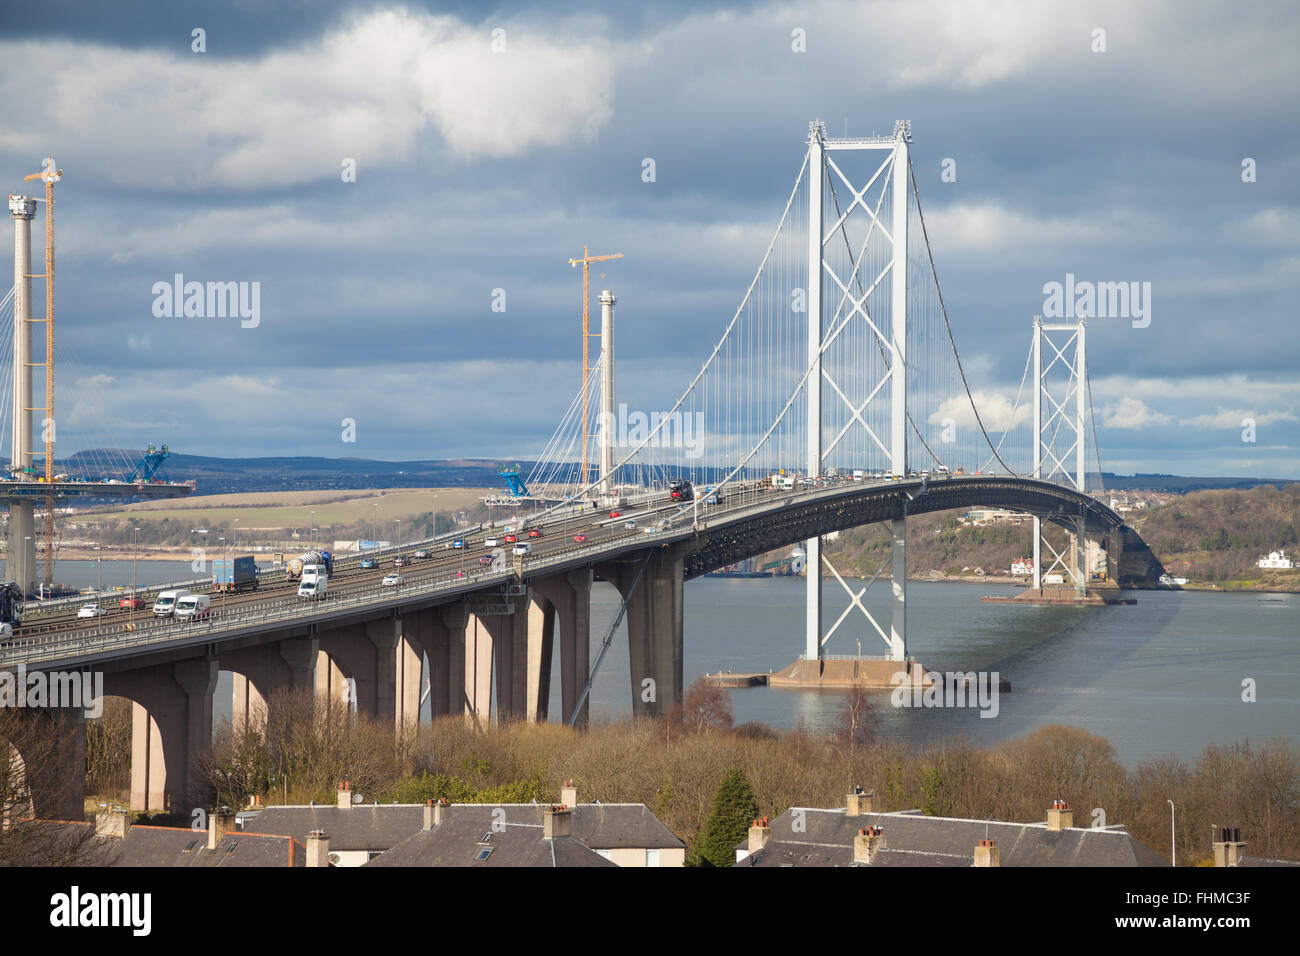 Building Of The Forth Road Bridge